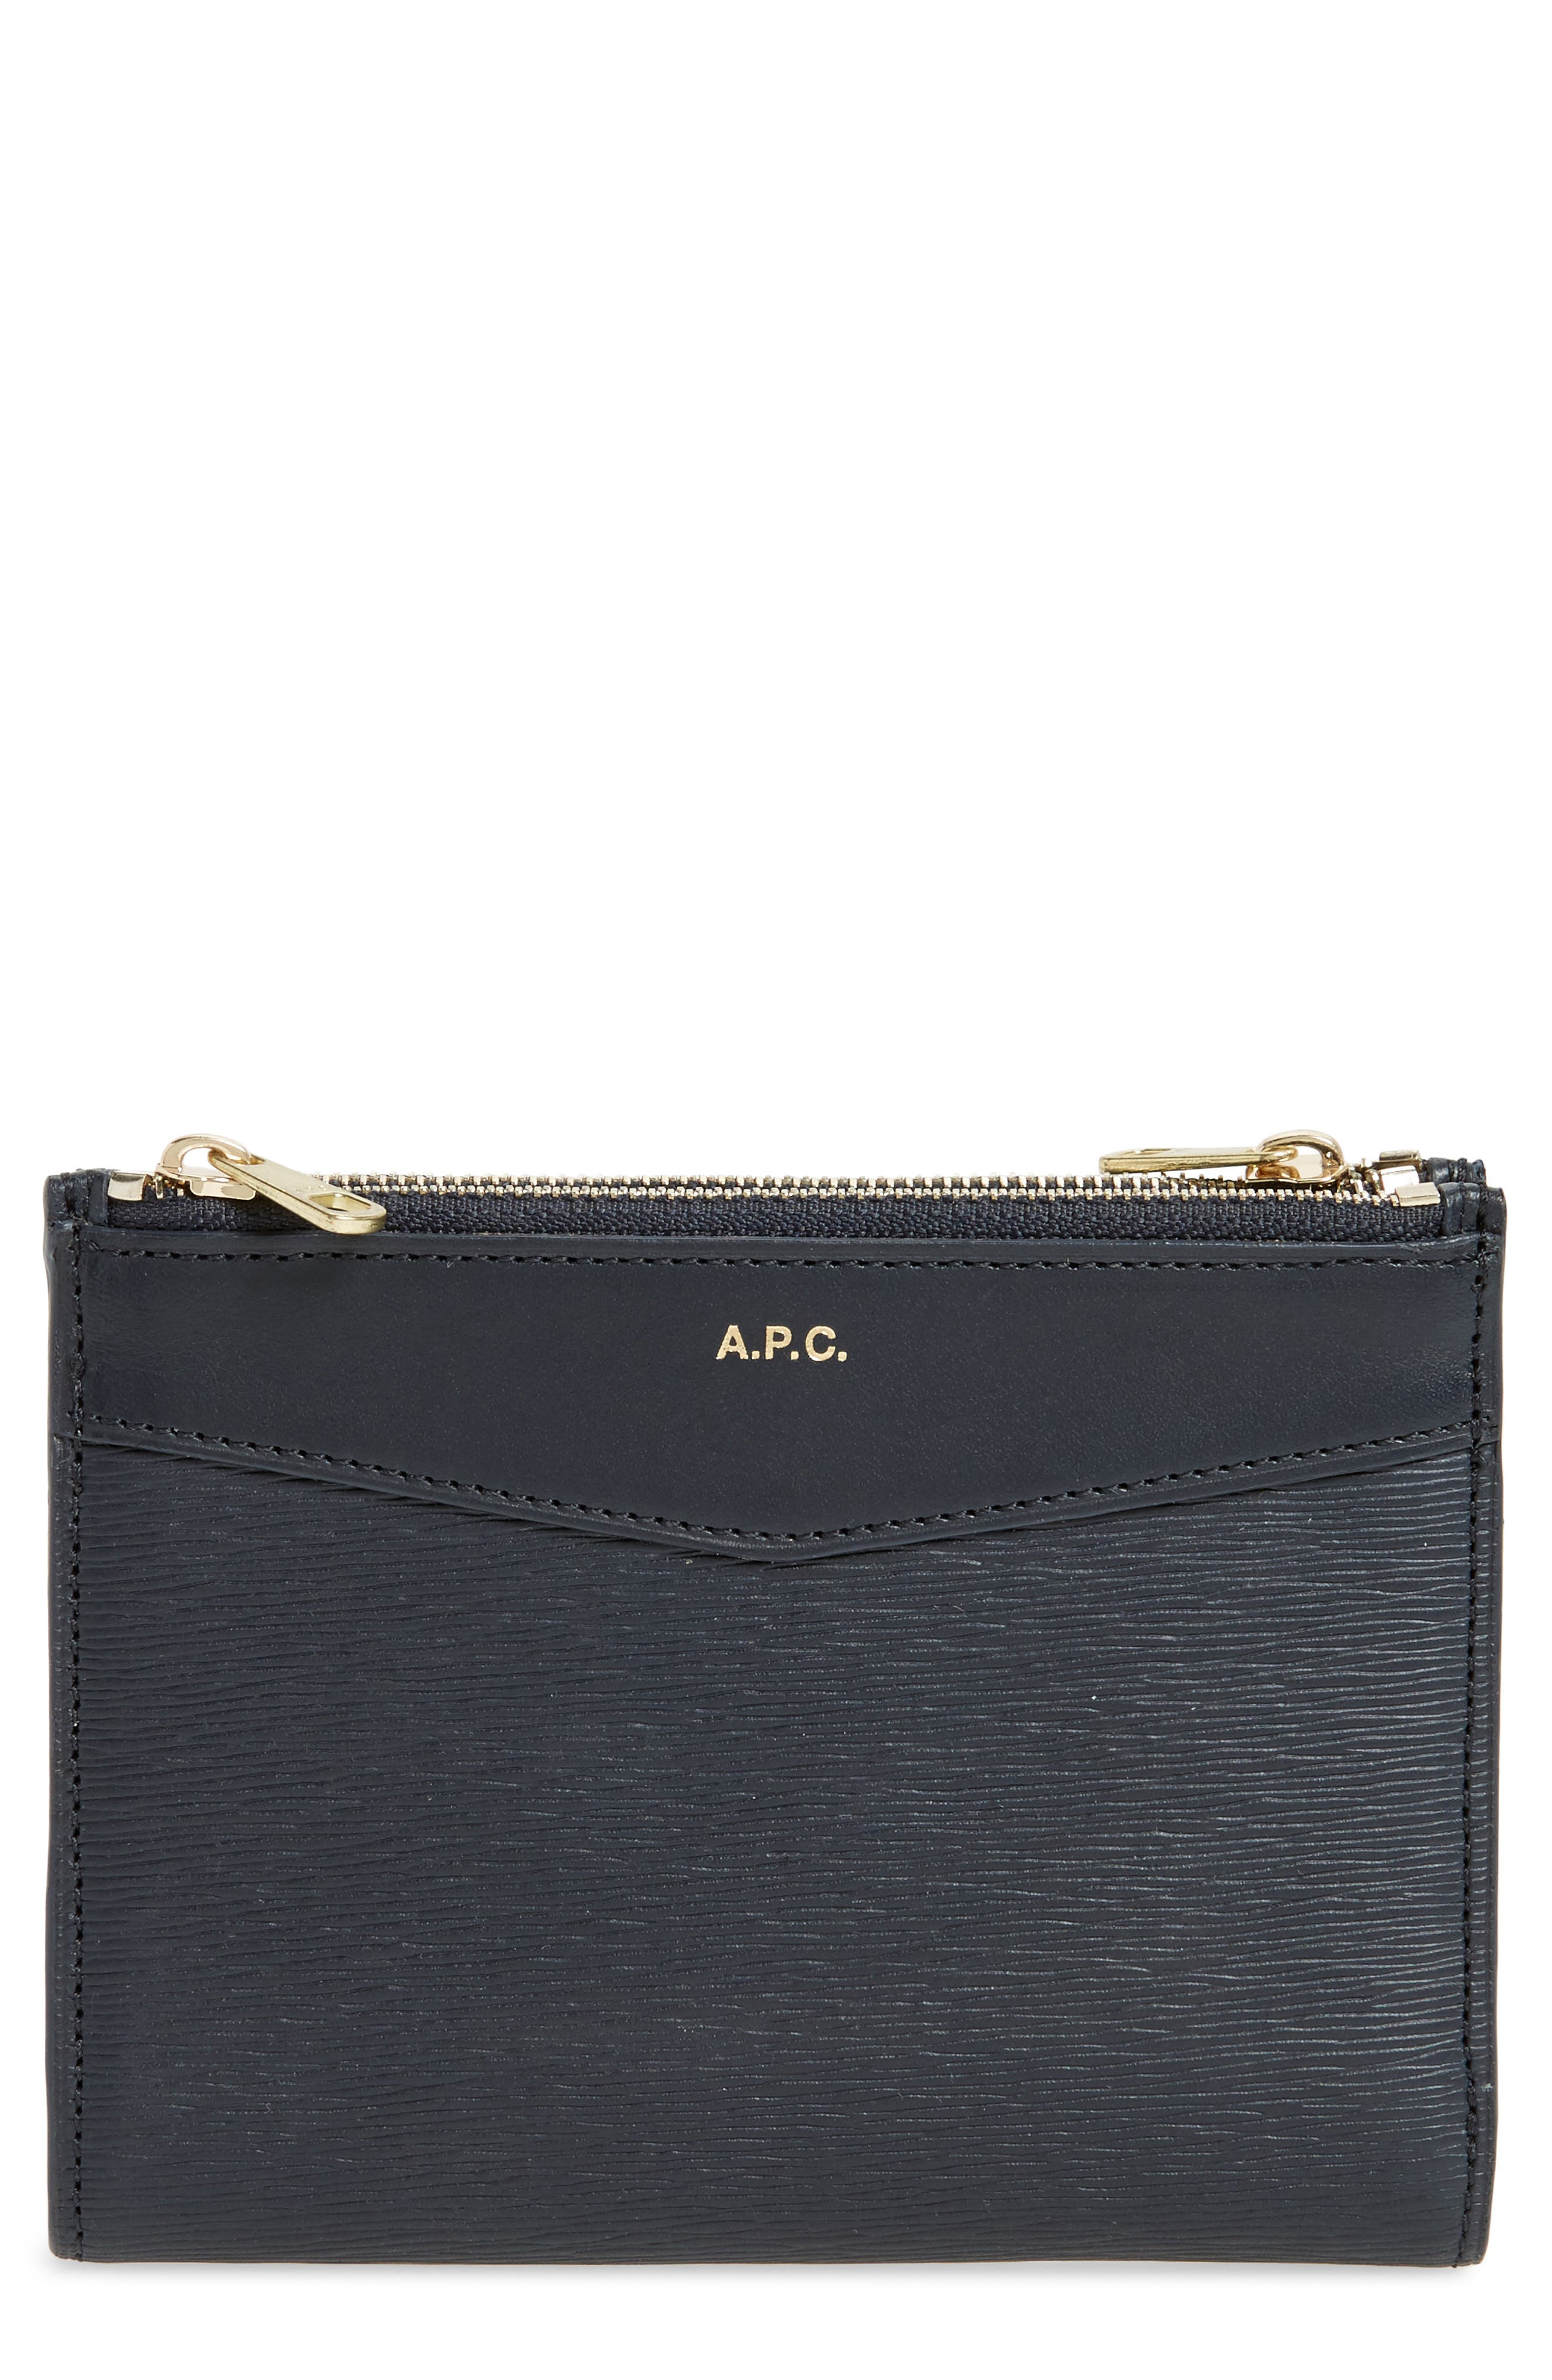 A.P.C. Claudine Calfskin Leather Wallet